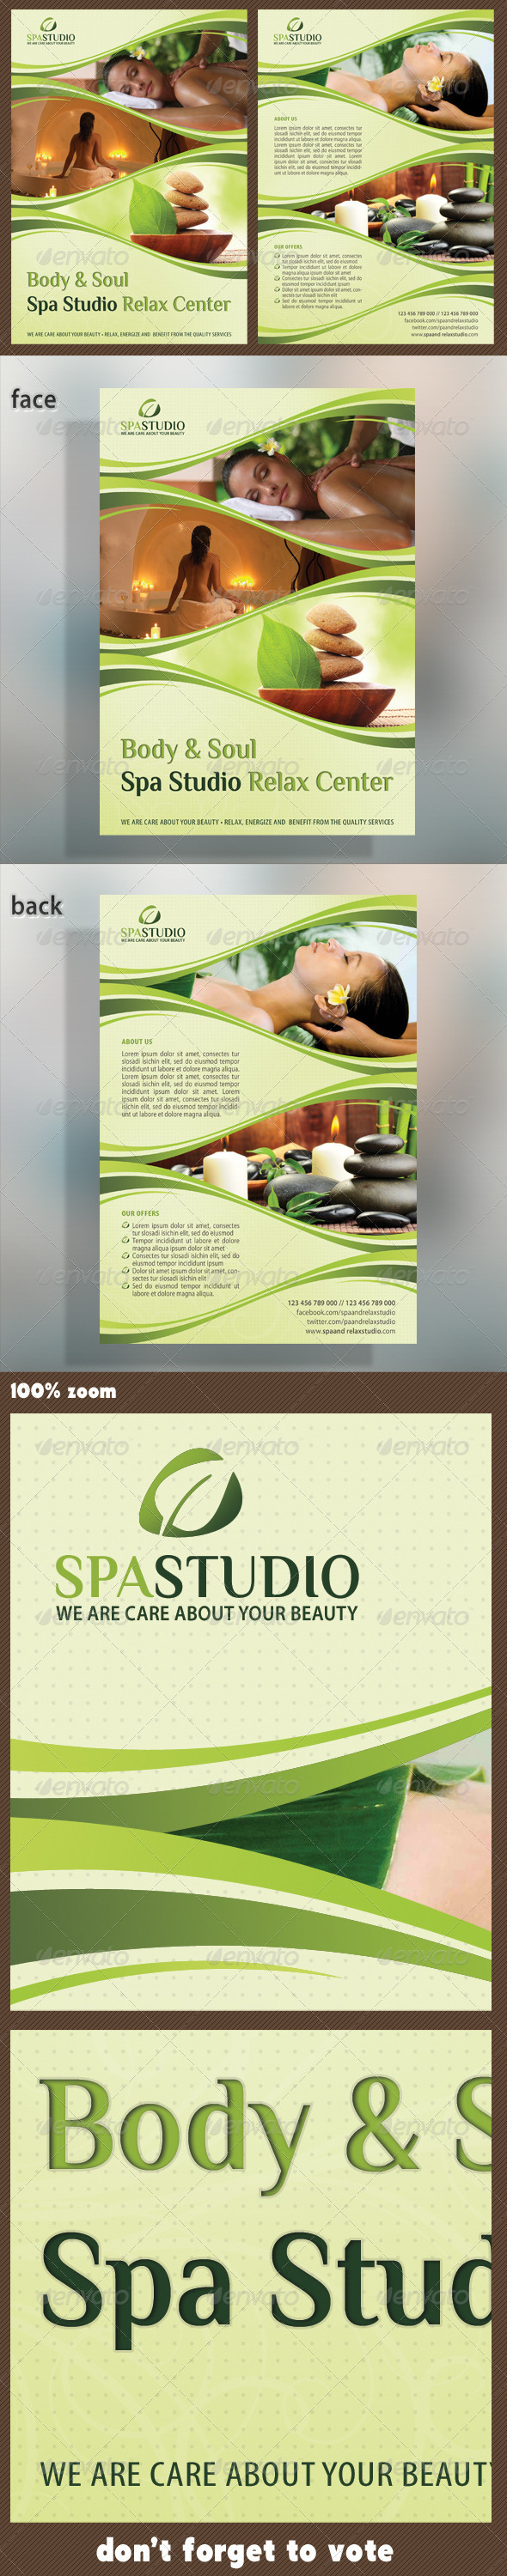 Spa Studio Flyer 05 - Corporate Flyers